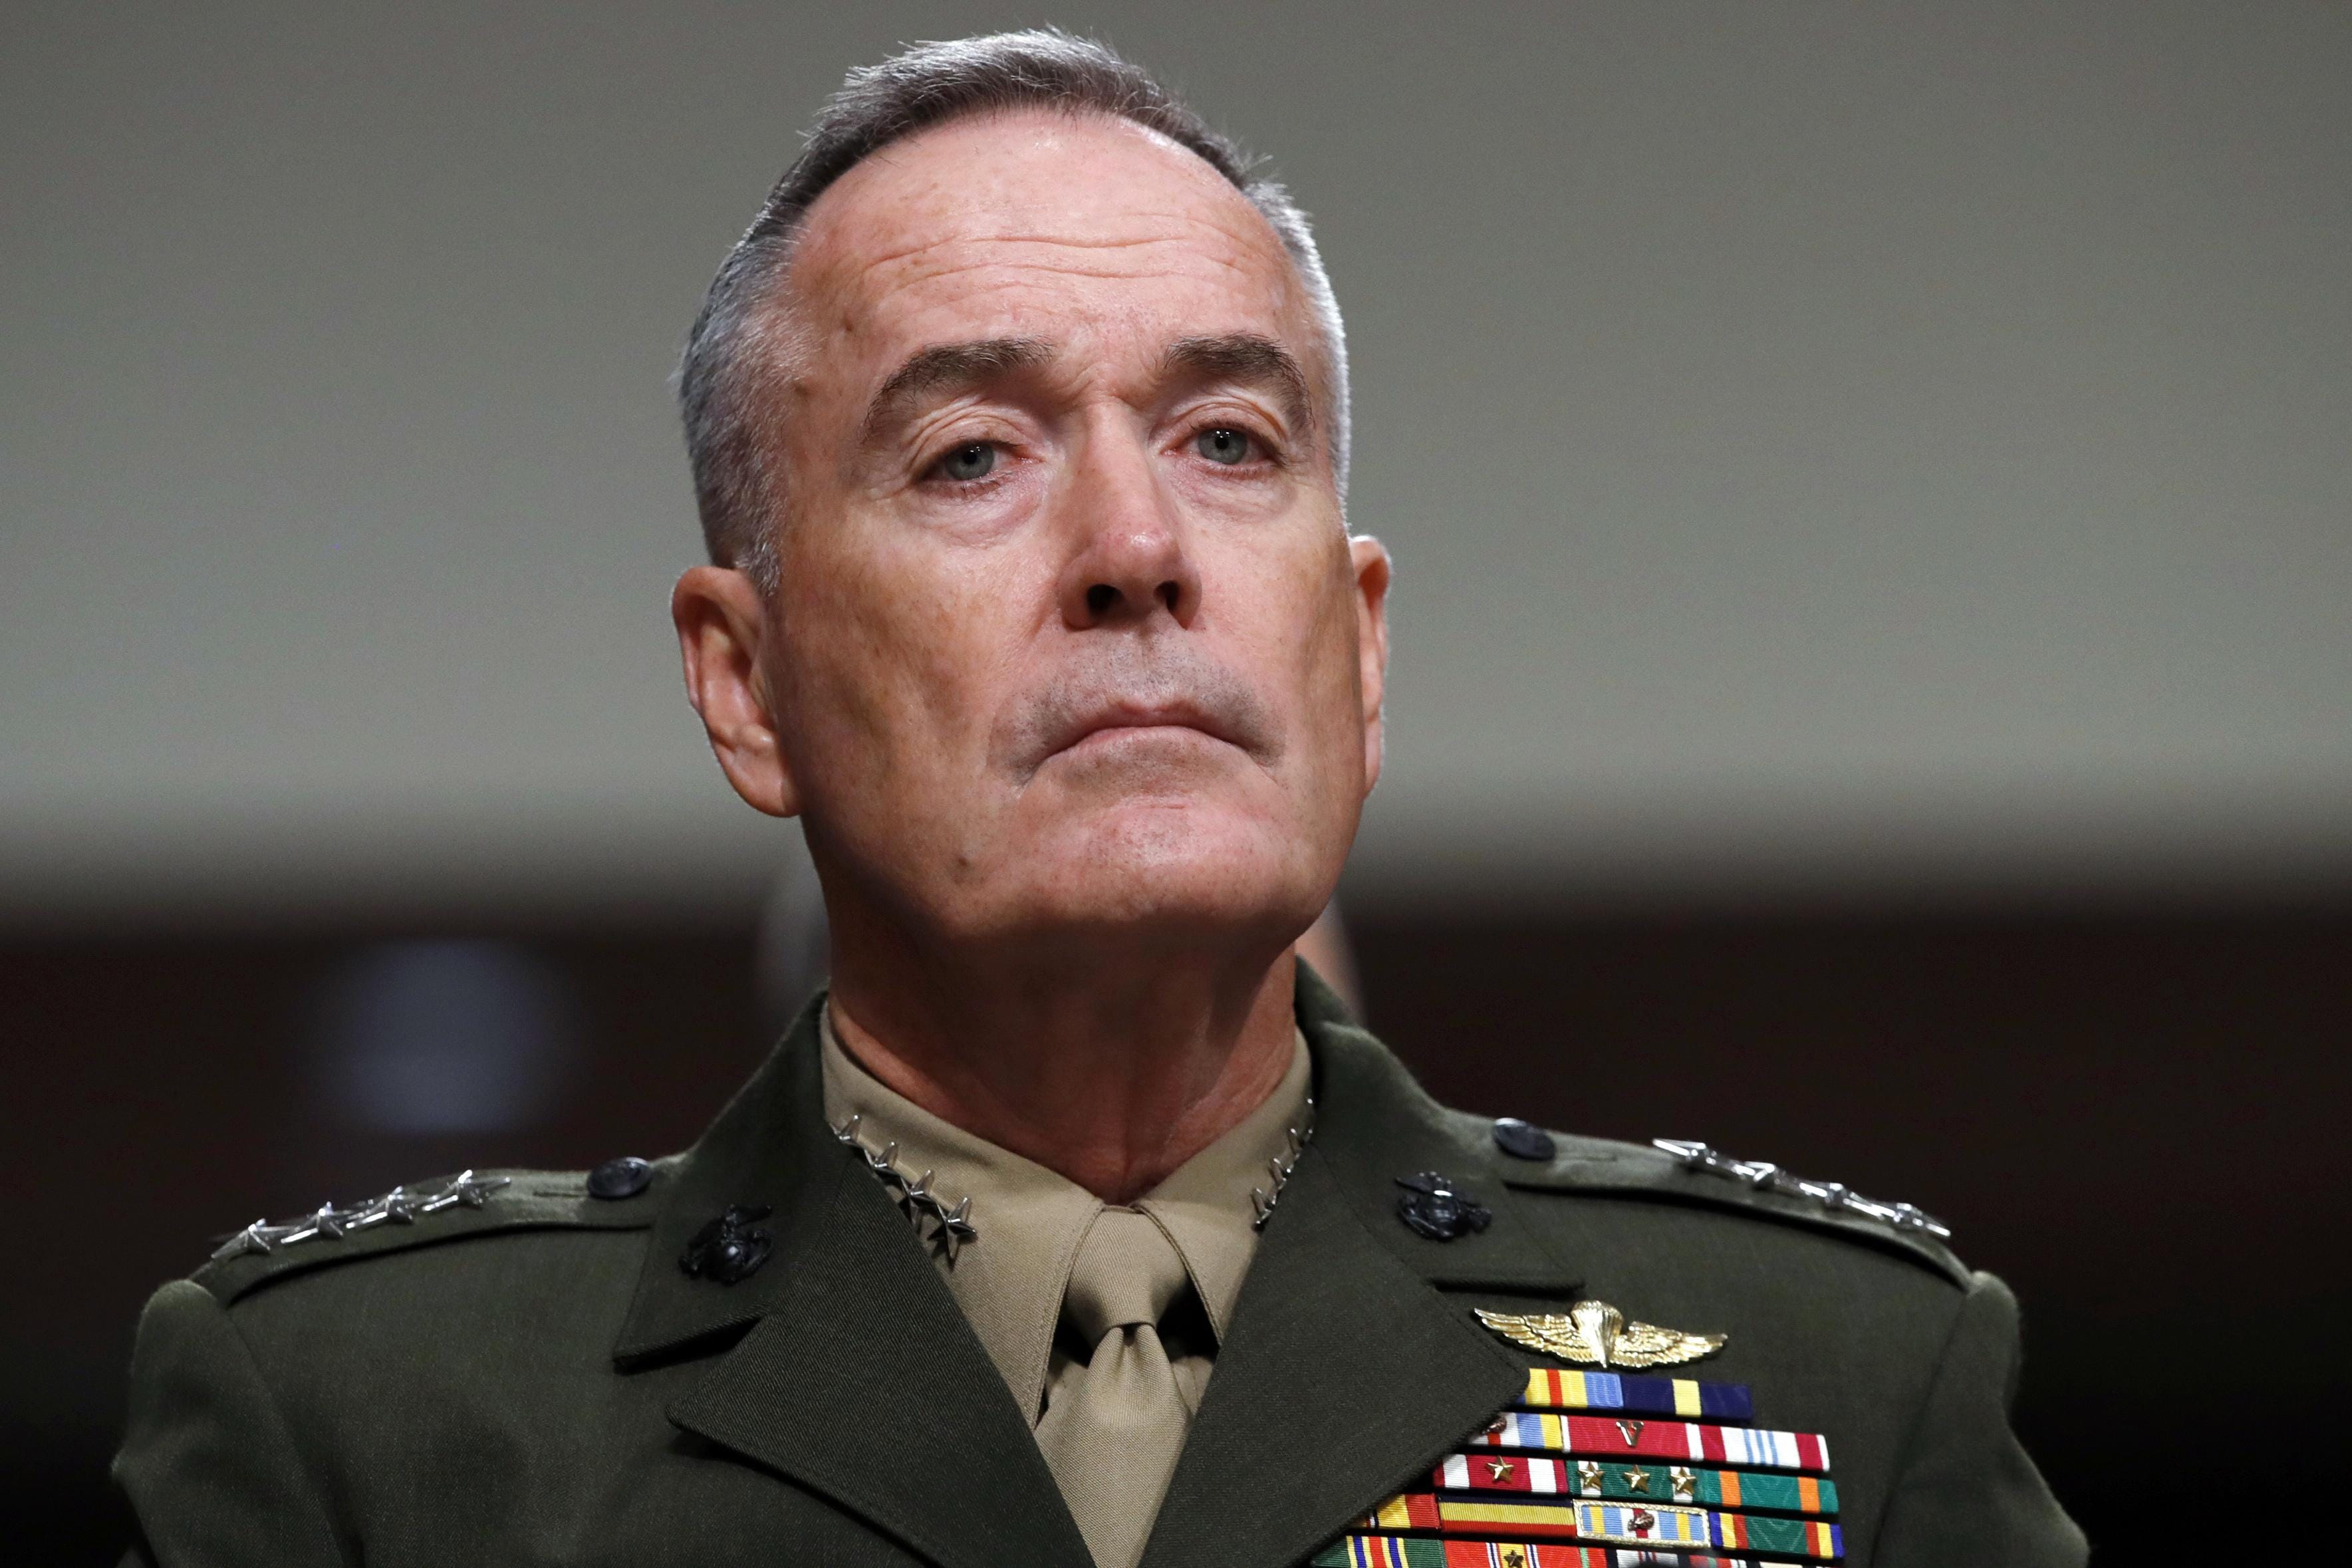 Joint chiefs chairman in Afghanistan to push strategy